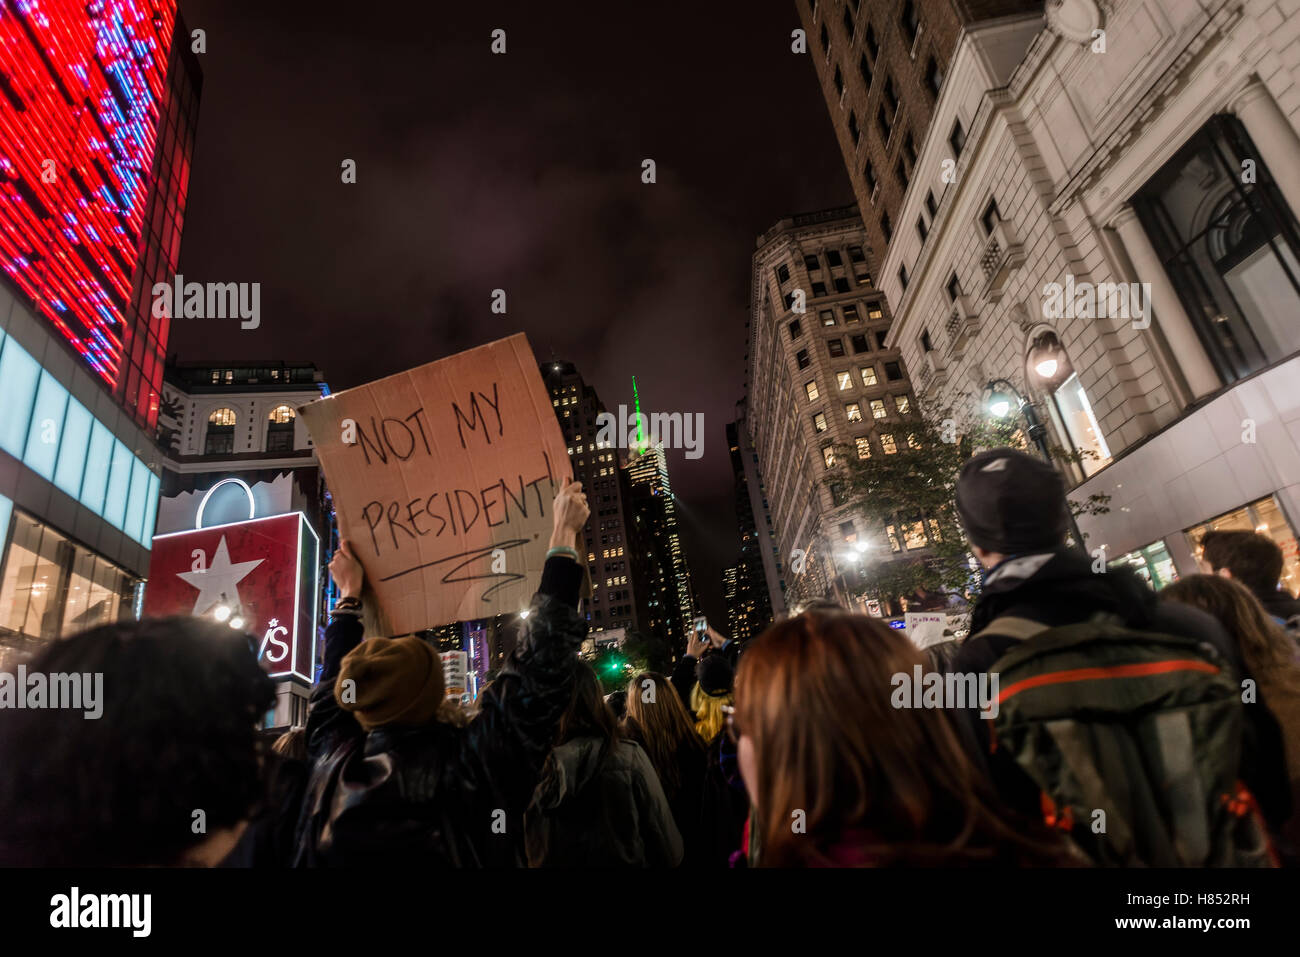 New York, USA - 9 November 2016 - One day after the United States Presidential Election 10,000 New Yorkers took Stock Photo